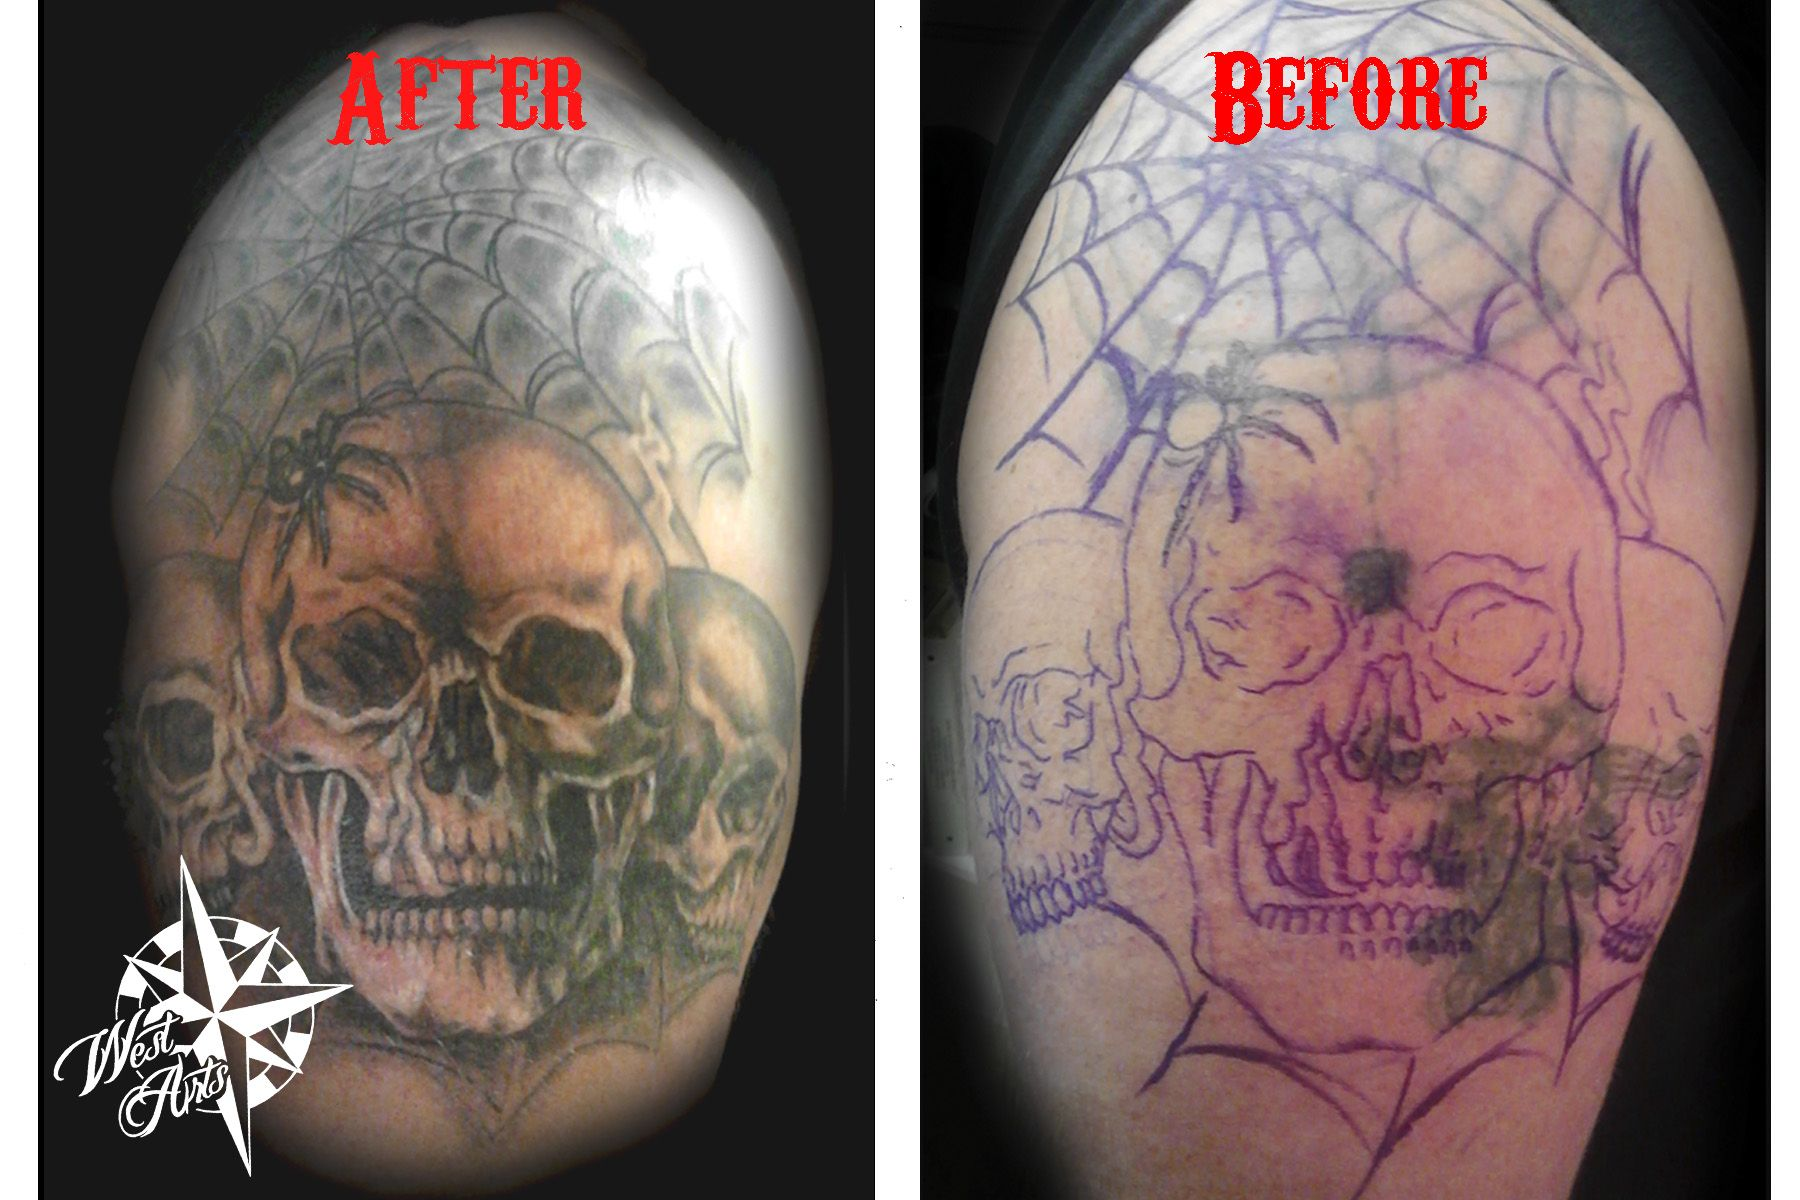 Skull & Spider Web Tattoo Cover-Up | Magnuse projekt | Tattoos, Web ...